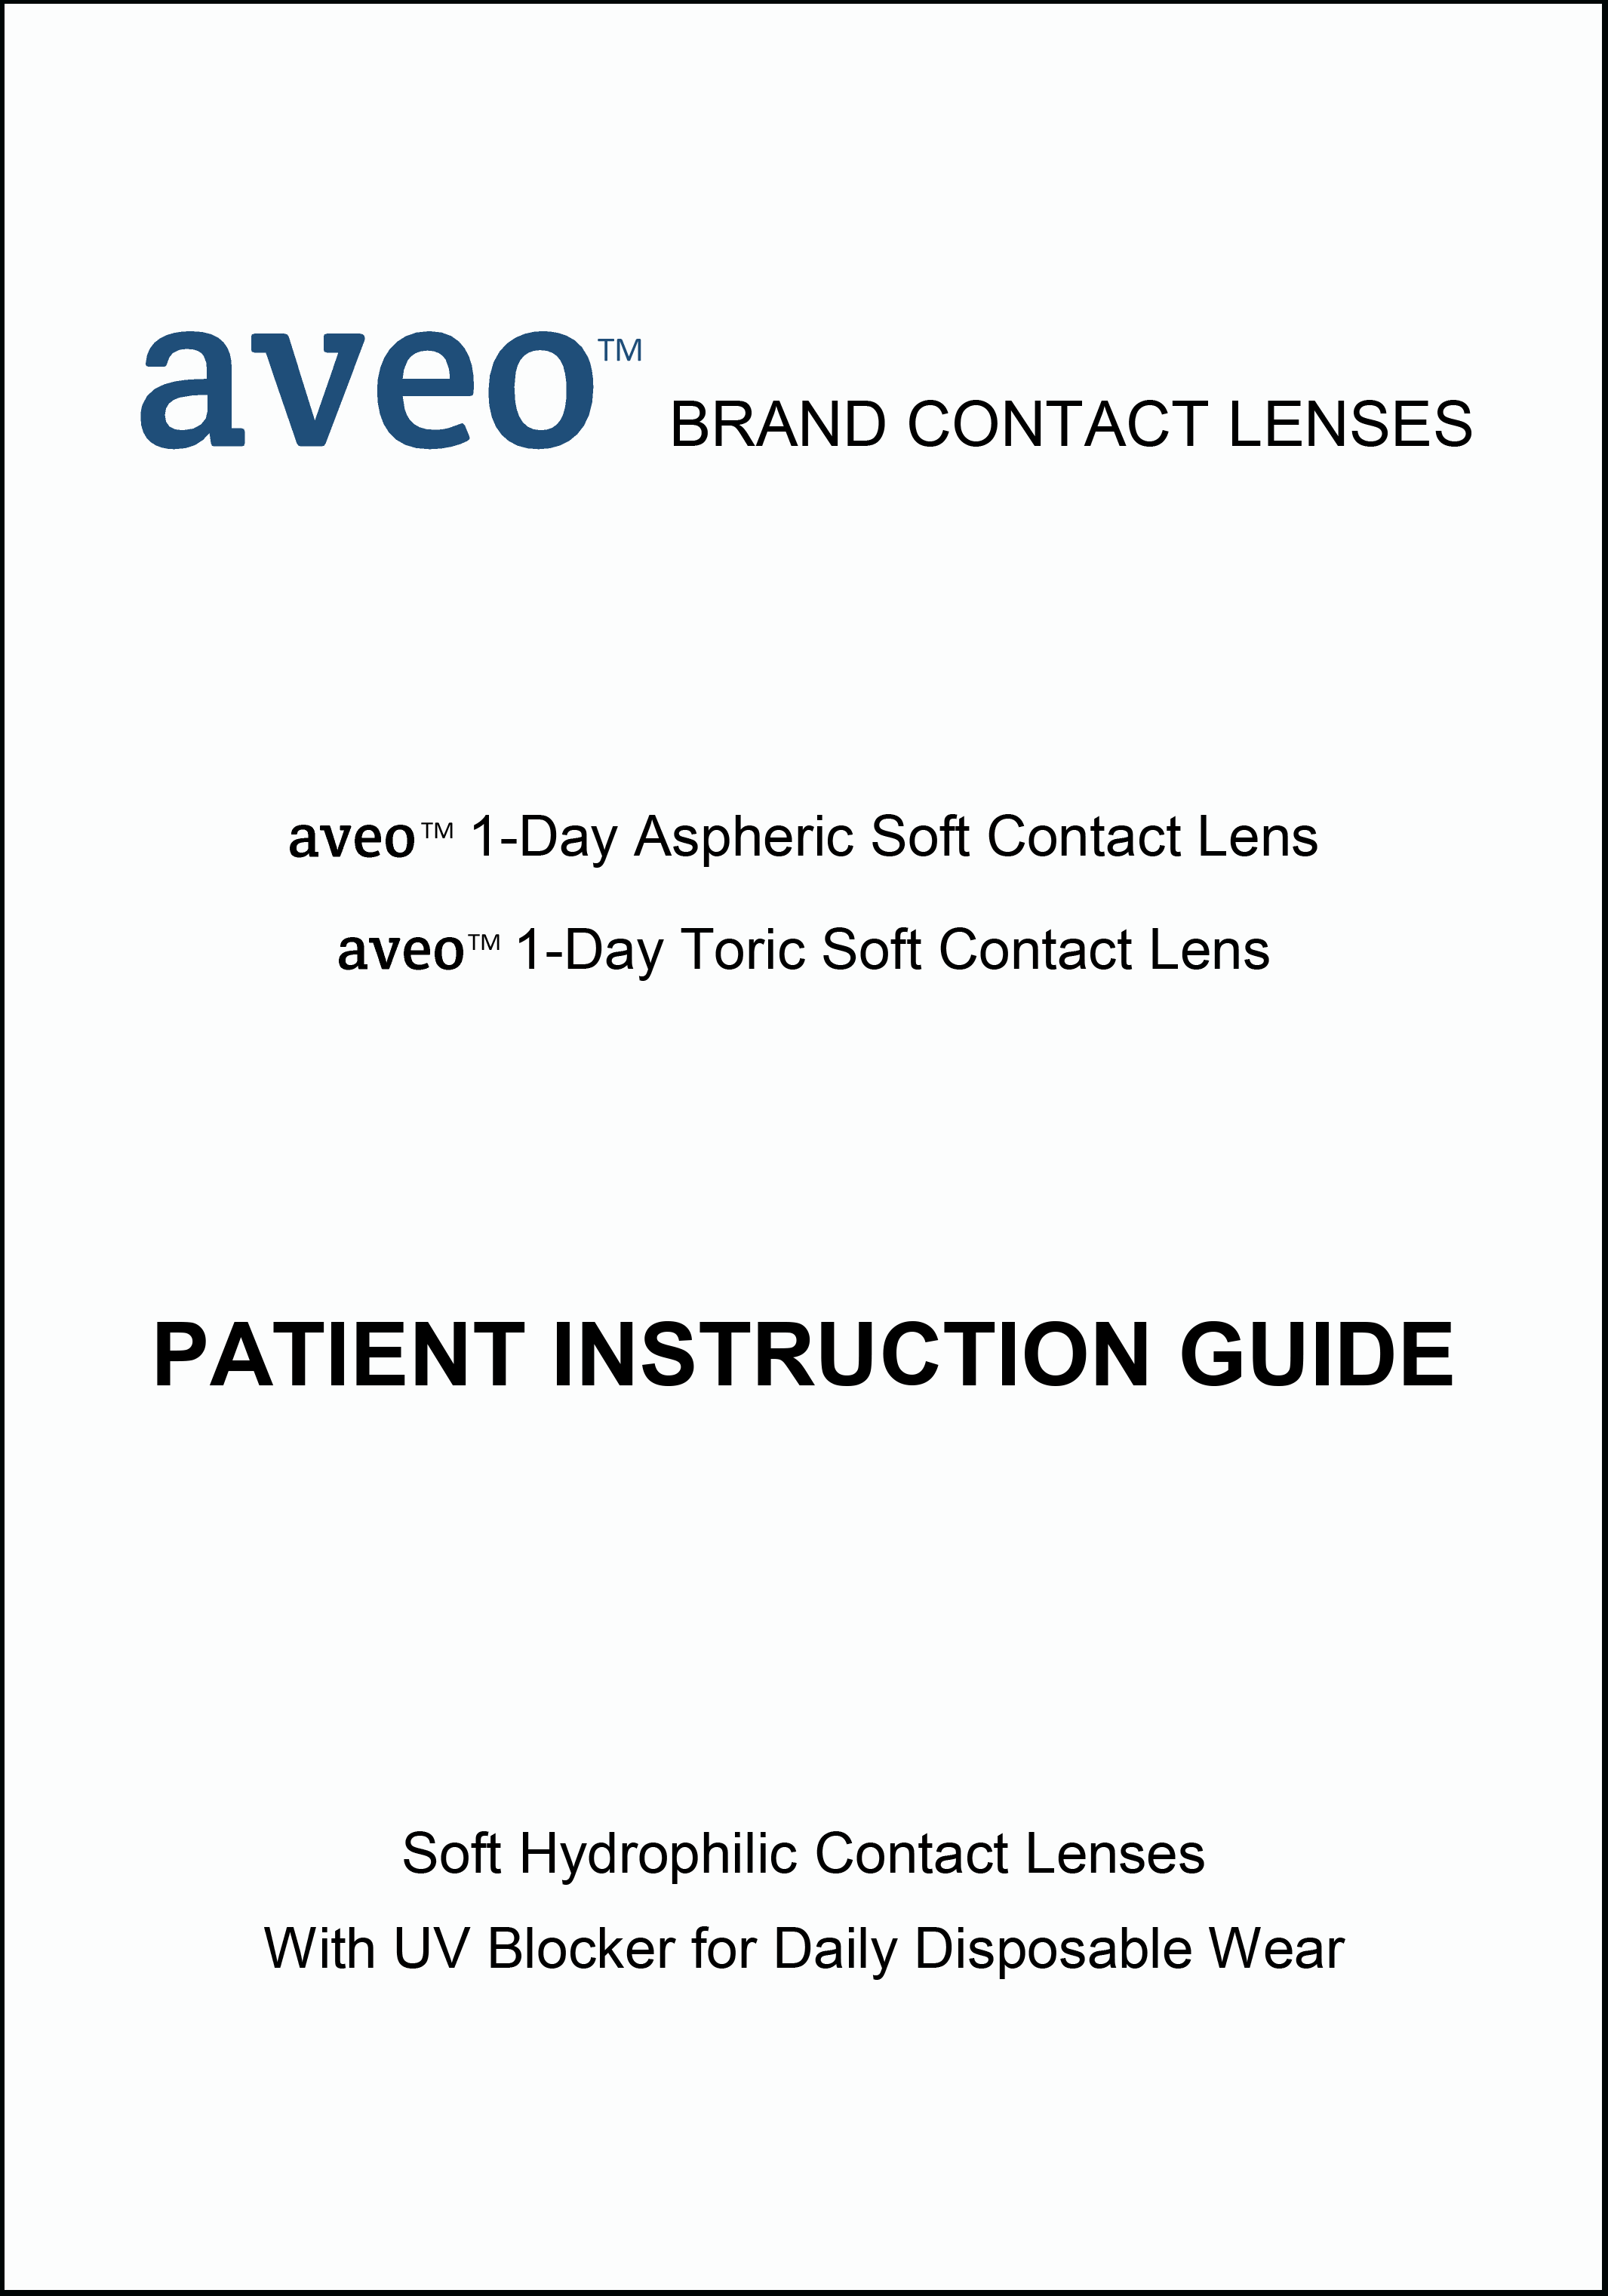 aveo-1-day-patient-instruction-guide-cover-page